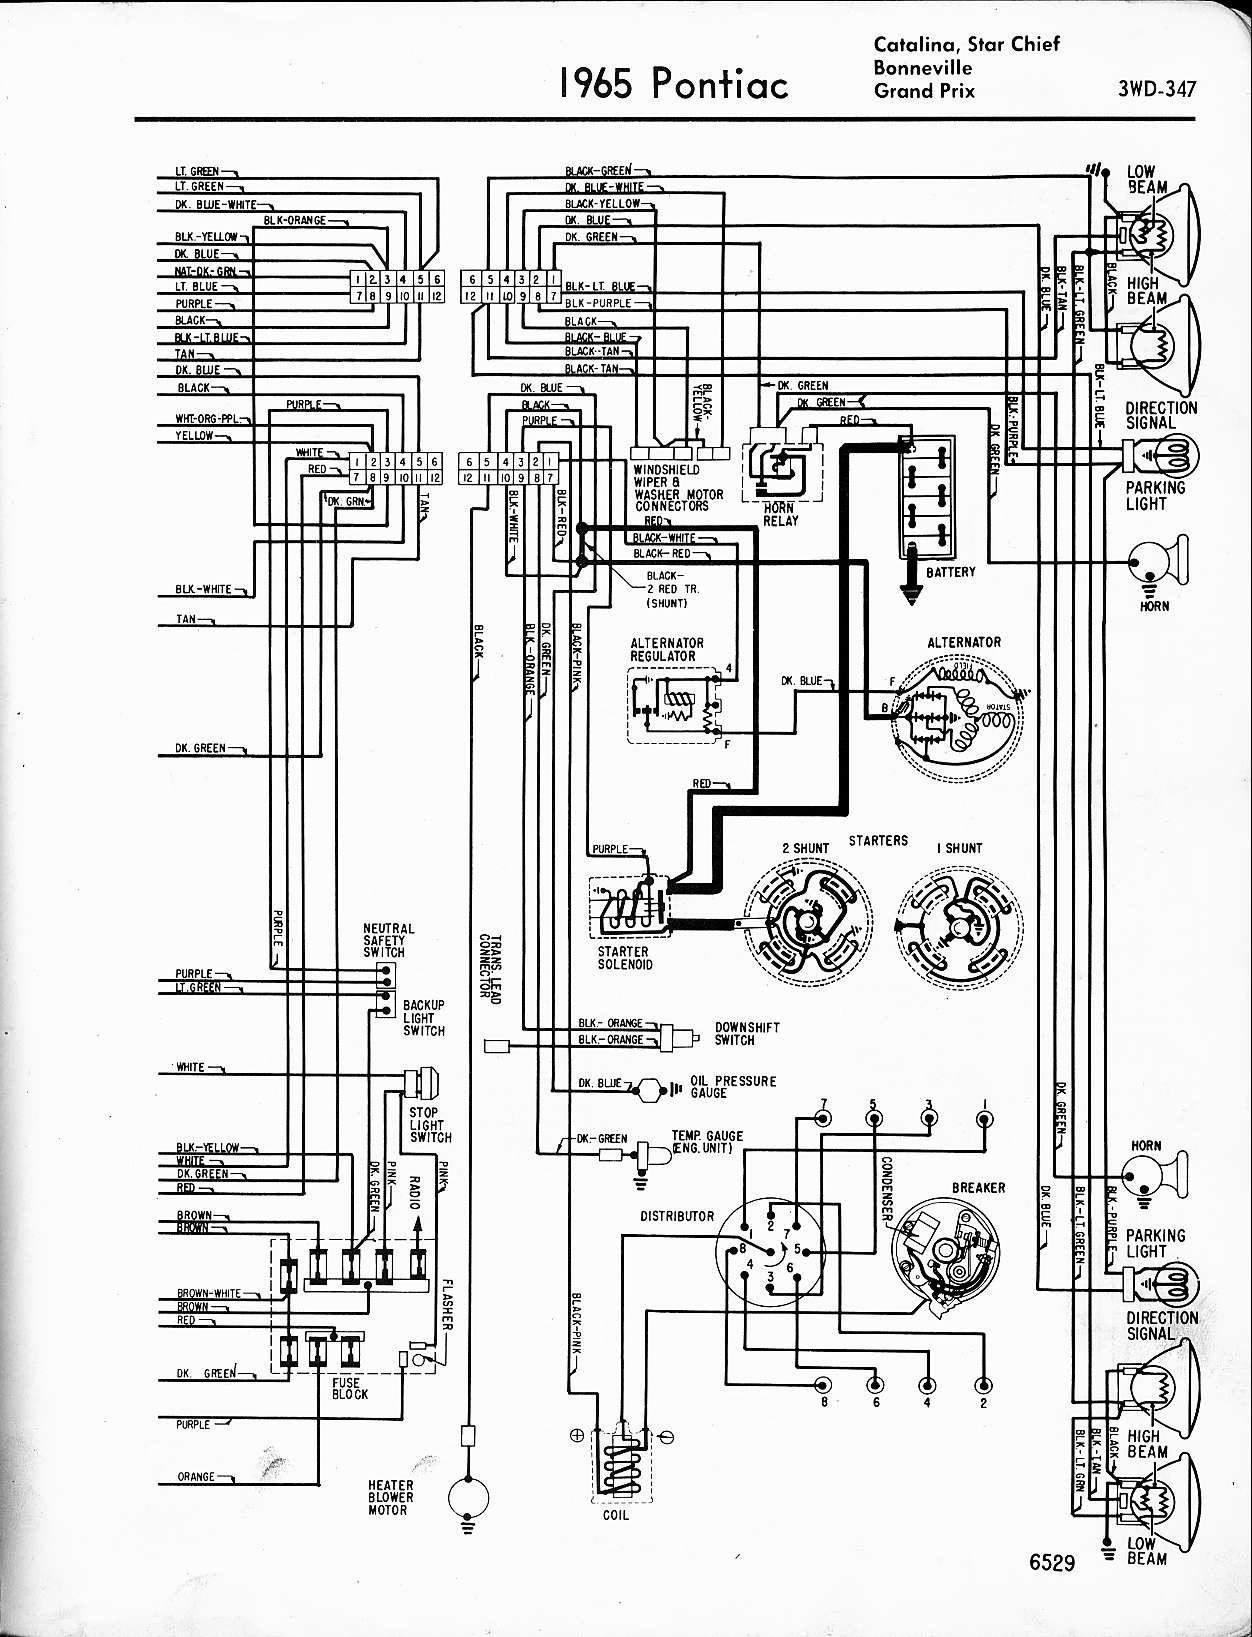 1995 Grand Am Engine Diagram | Wiring Liry on 95 chevy lumina wiring diagram, 95 toyota tacoma wiring diagram, 95 buick lesabre wiring diagram, 95 dodge ram 1500 wiring diagram, 95 dodge ram 2500 wiring diagram, 95 ford super duty wiring diagram, 95 ford windstar wiring diagram, 95 ford bronco wiring diagram, 95 cadillac deville wiring diagram, 95 chevy corsica wiring diagram, 95 chevrolet s10 wiring diagram,